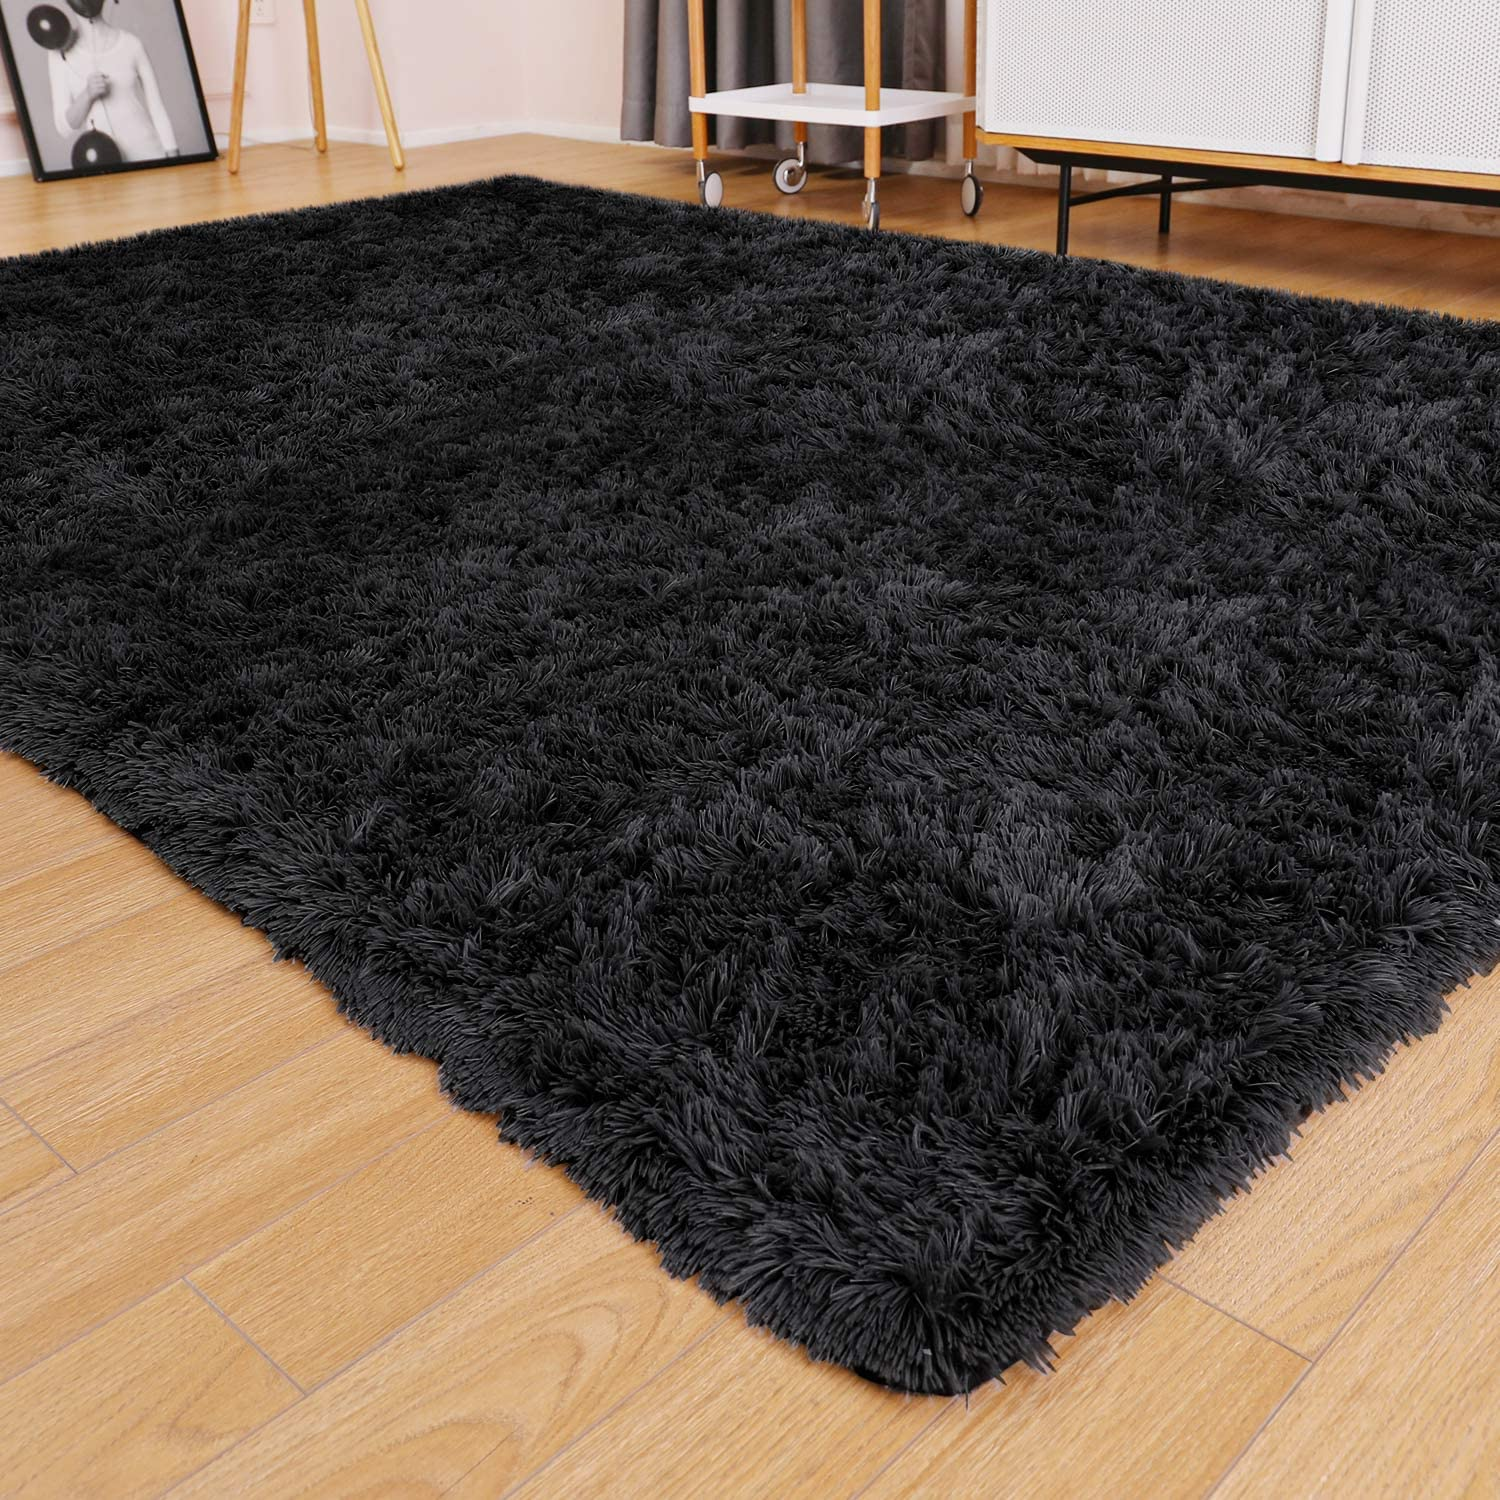 Ophanie Ultra Soft Fluffy Area Rugs for Living Room, Luxury Shag Rug Faux Fur Non-Slip Floor Carpet for Bedroom, Kids Room, Baby Room, Girls Room, and Nursery - Modern Home Decor, 4x5.3 Feet Black